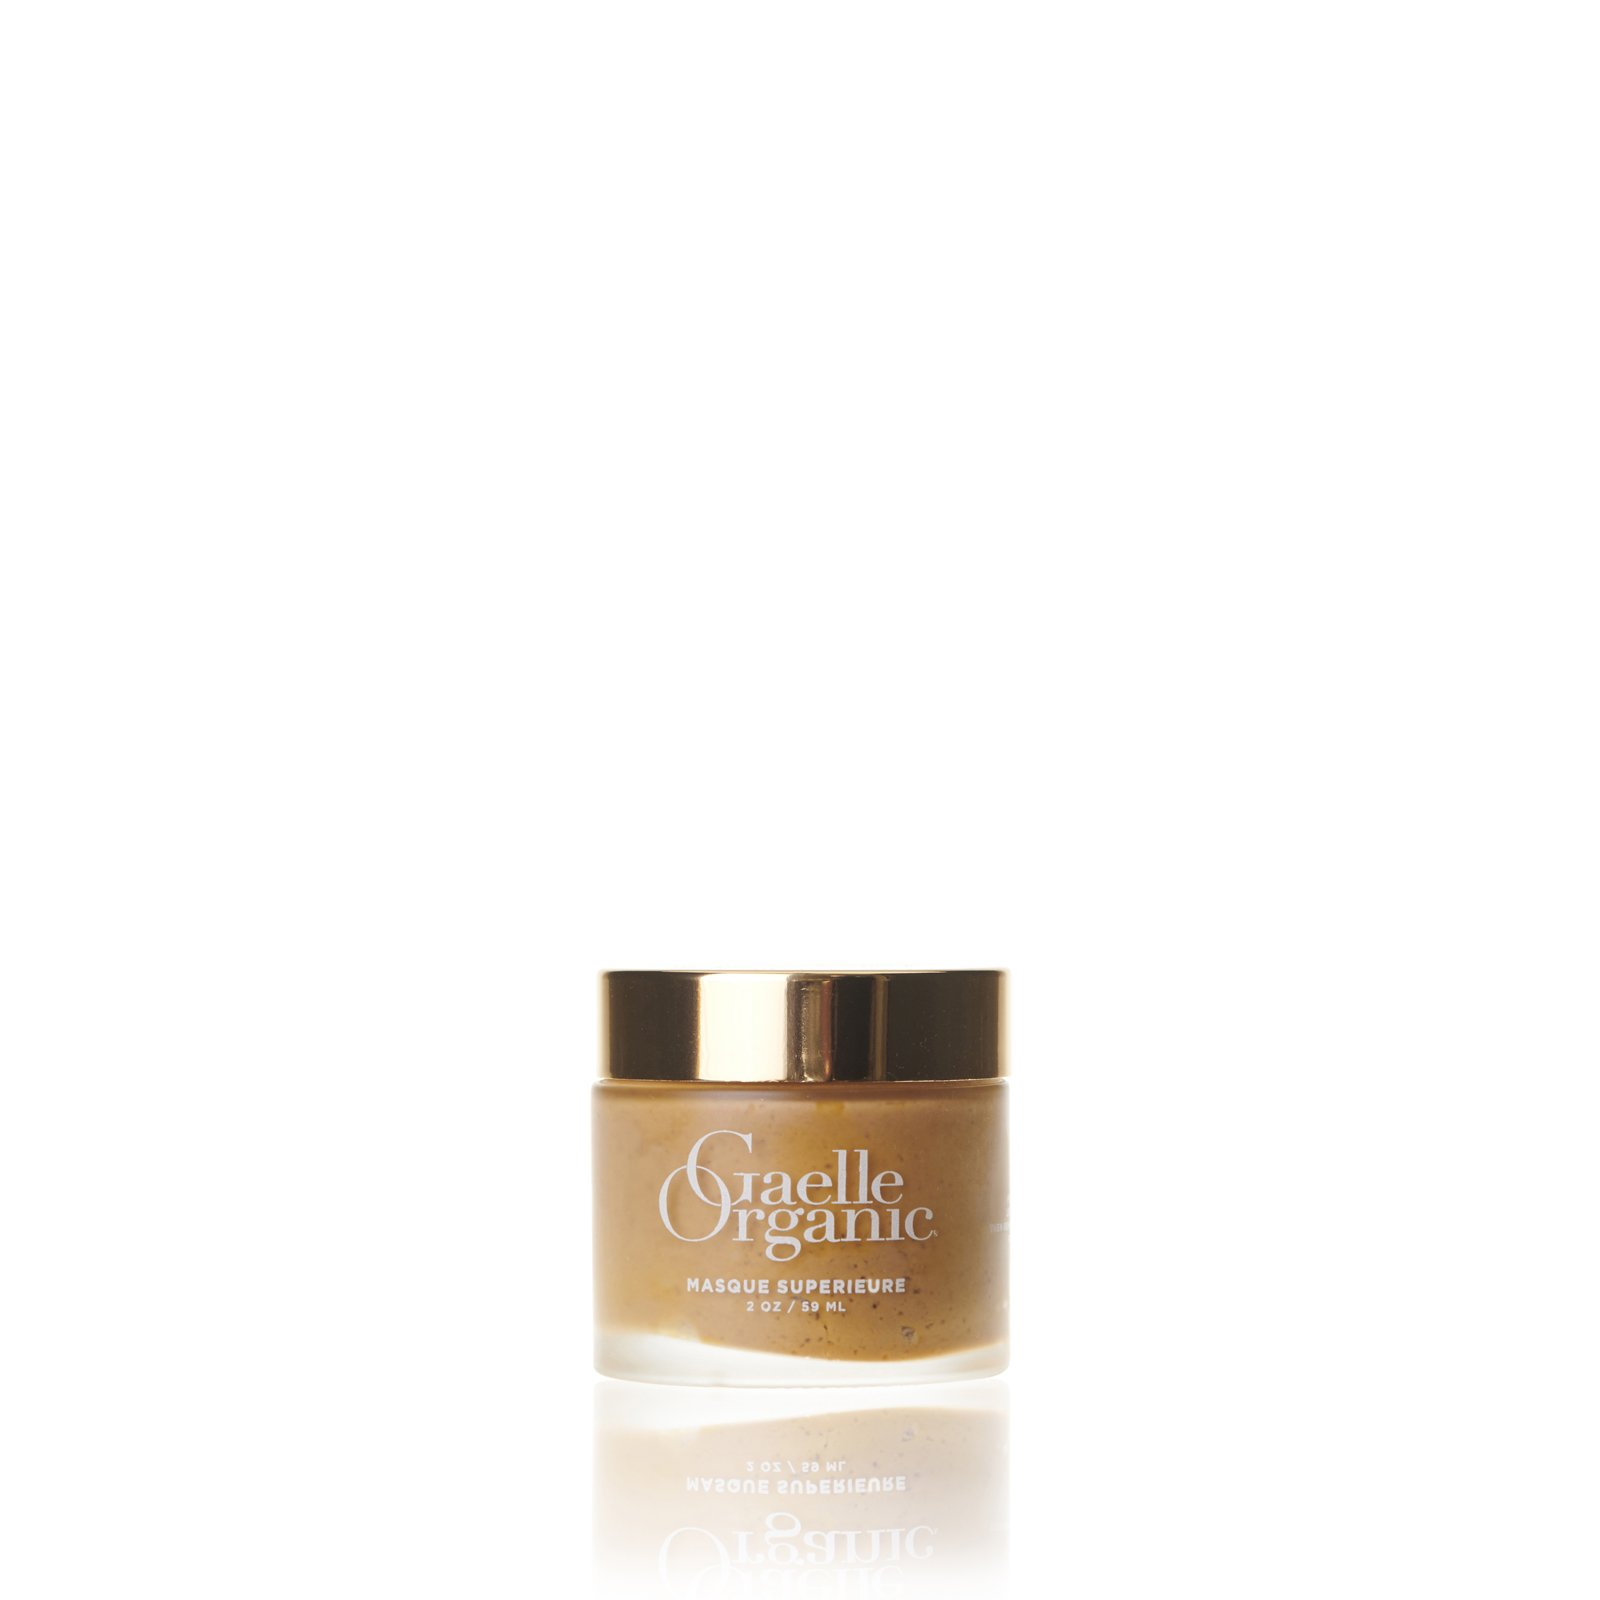 Masque Supérieure Sea Mineral Treatment from Gaelle Organic